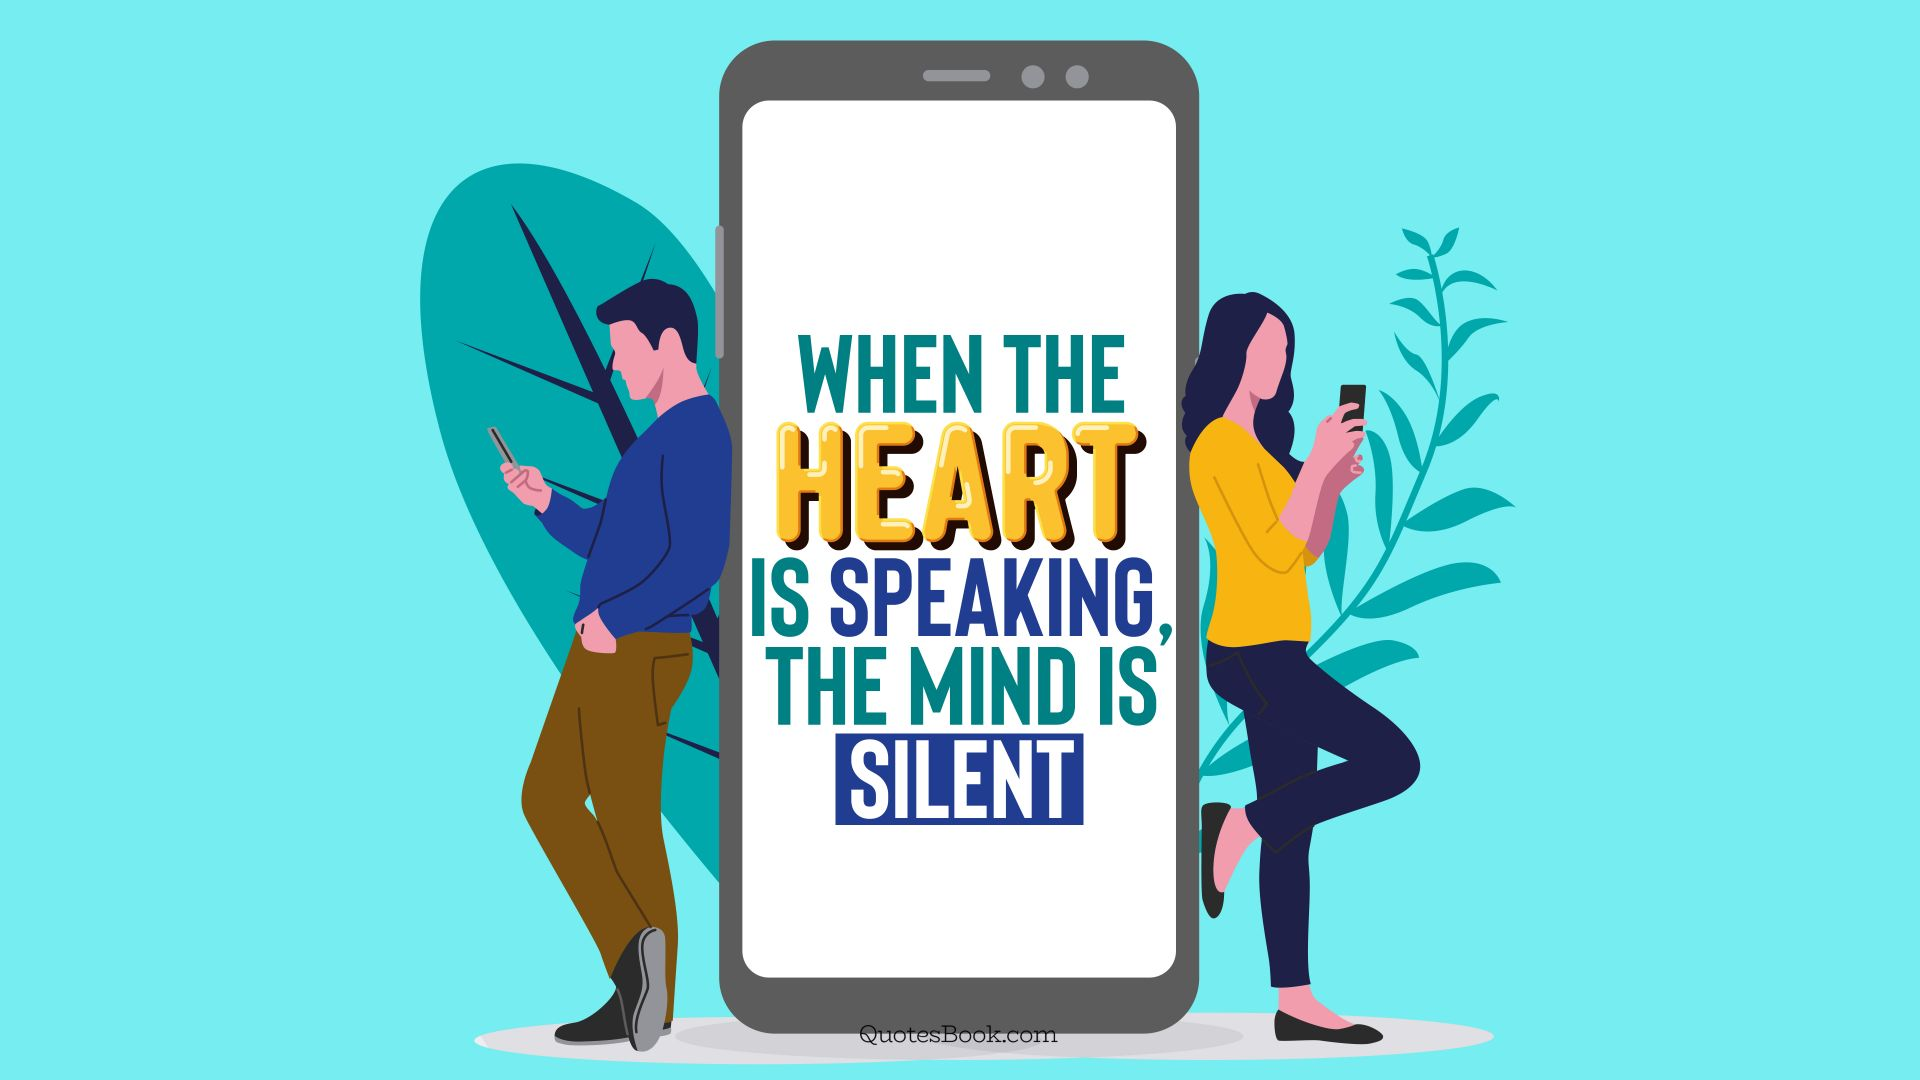 When the heart is speaking, the mind is silent